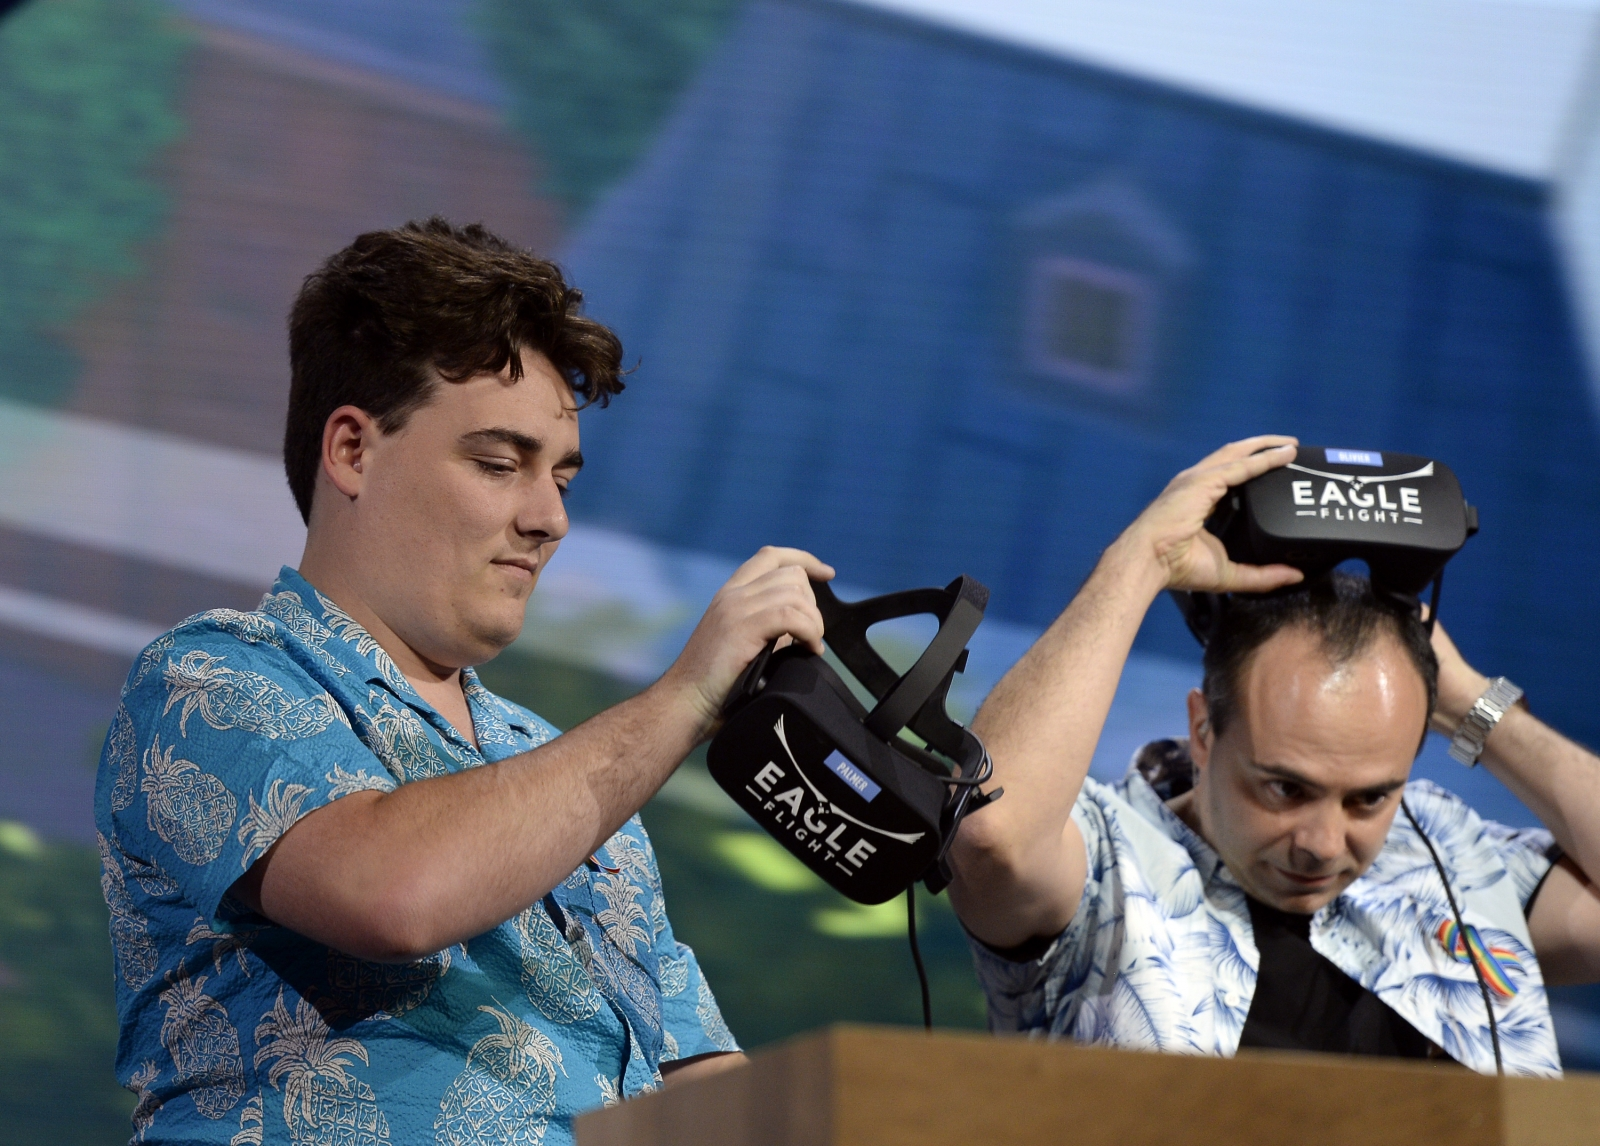 Oculus Founder Palmer Luckey Now Developing Border Control Tech